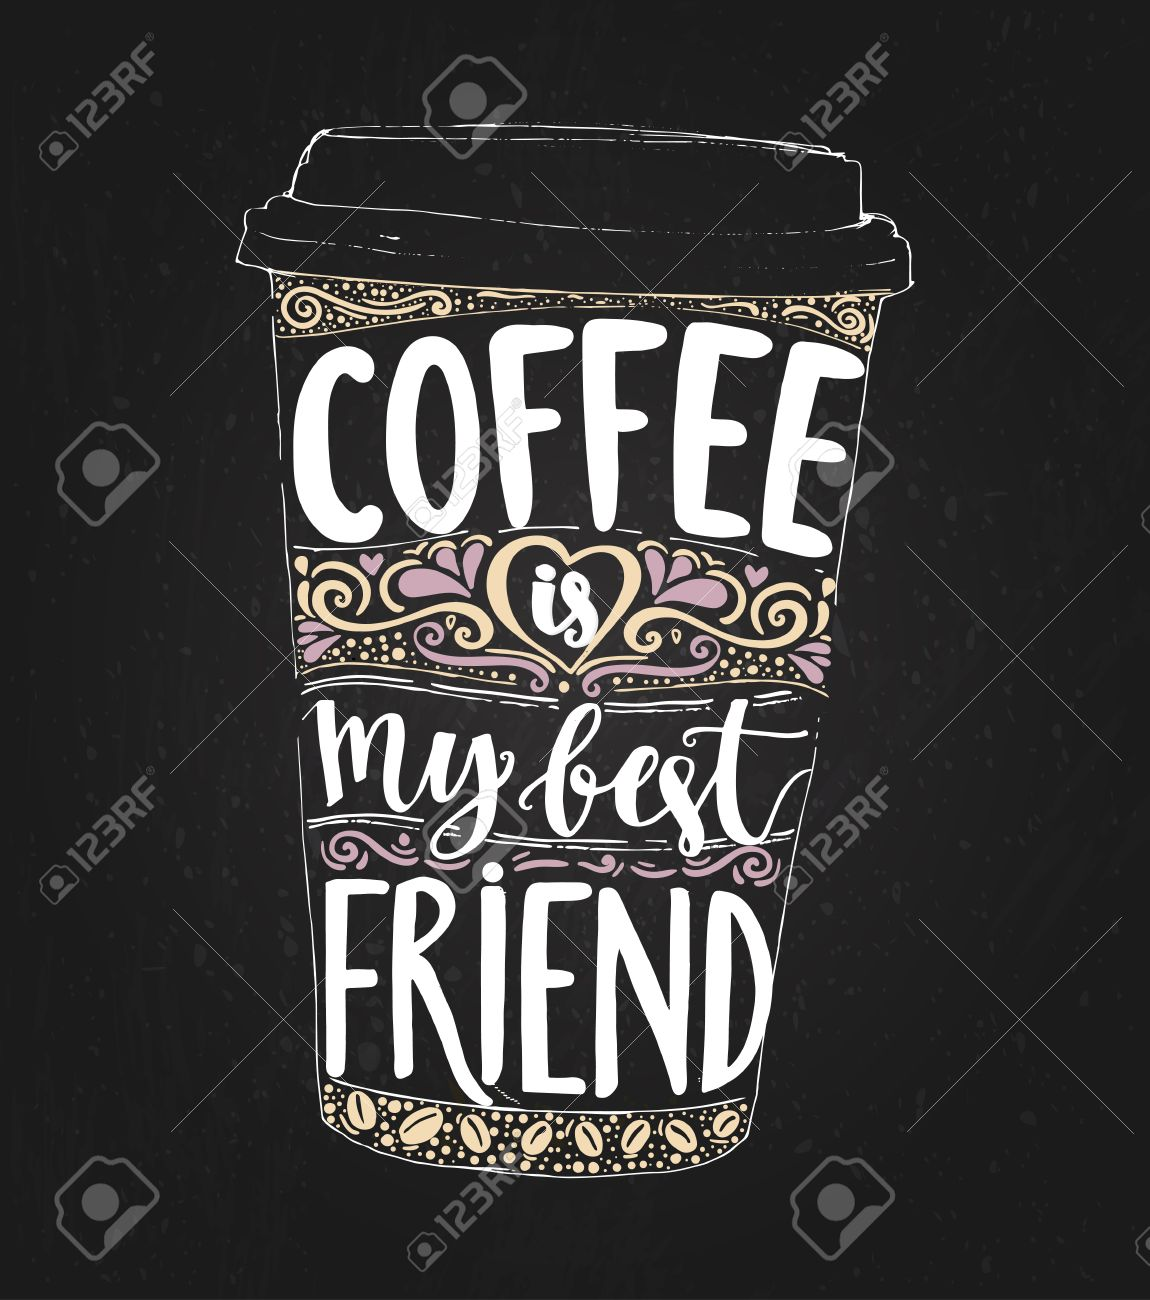 Coffee is my best friend. Monday saying, vector lettering in tall coffee cup. Print for take away cafe, t-shirt for coffee addicted. Inspirational quote for restaurant or social media content. - 60316551